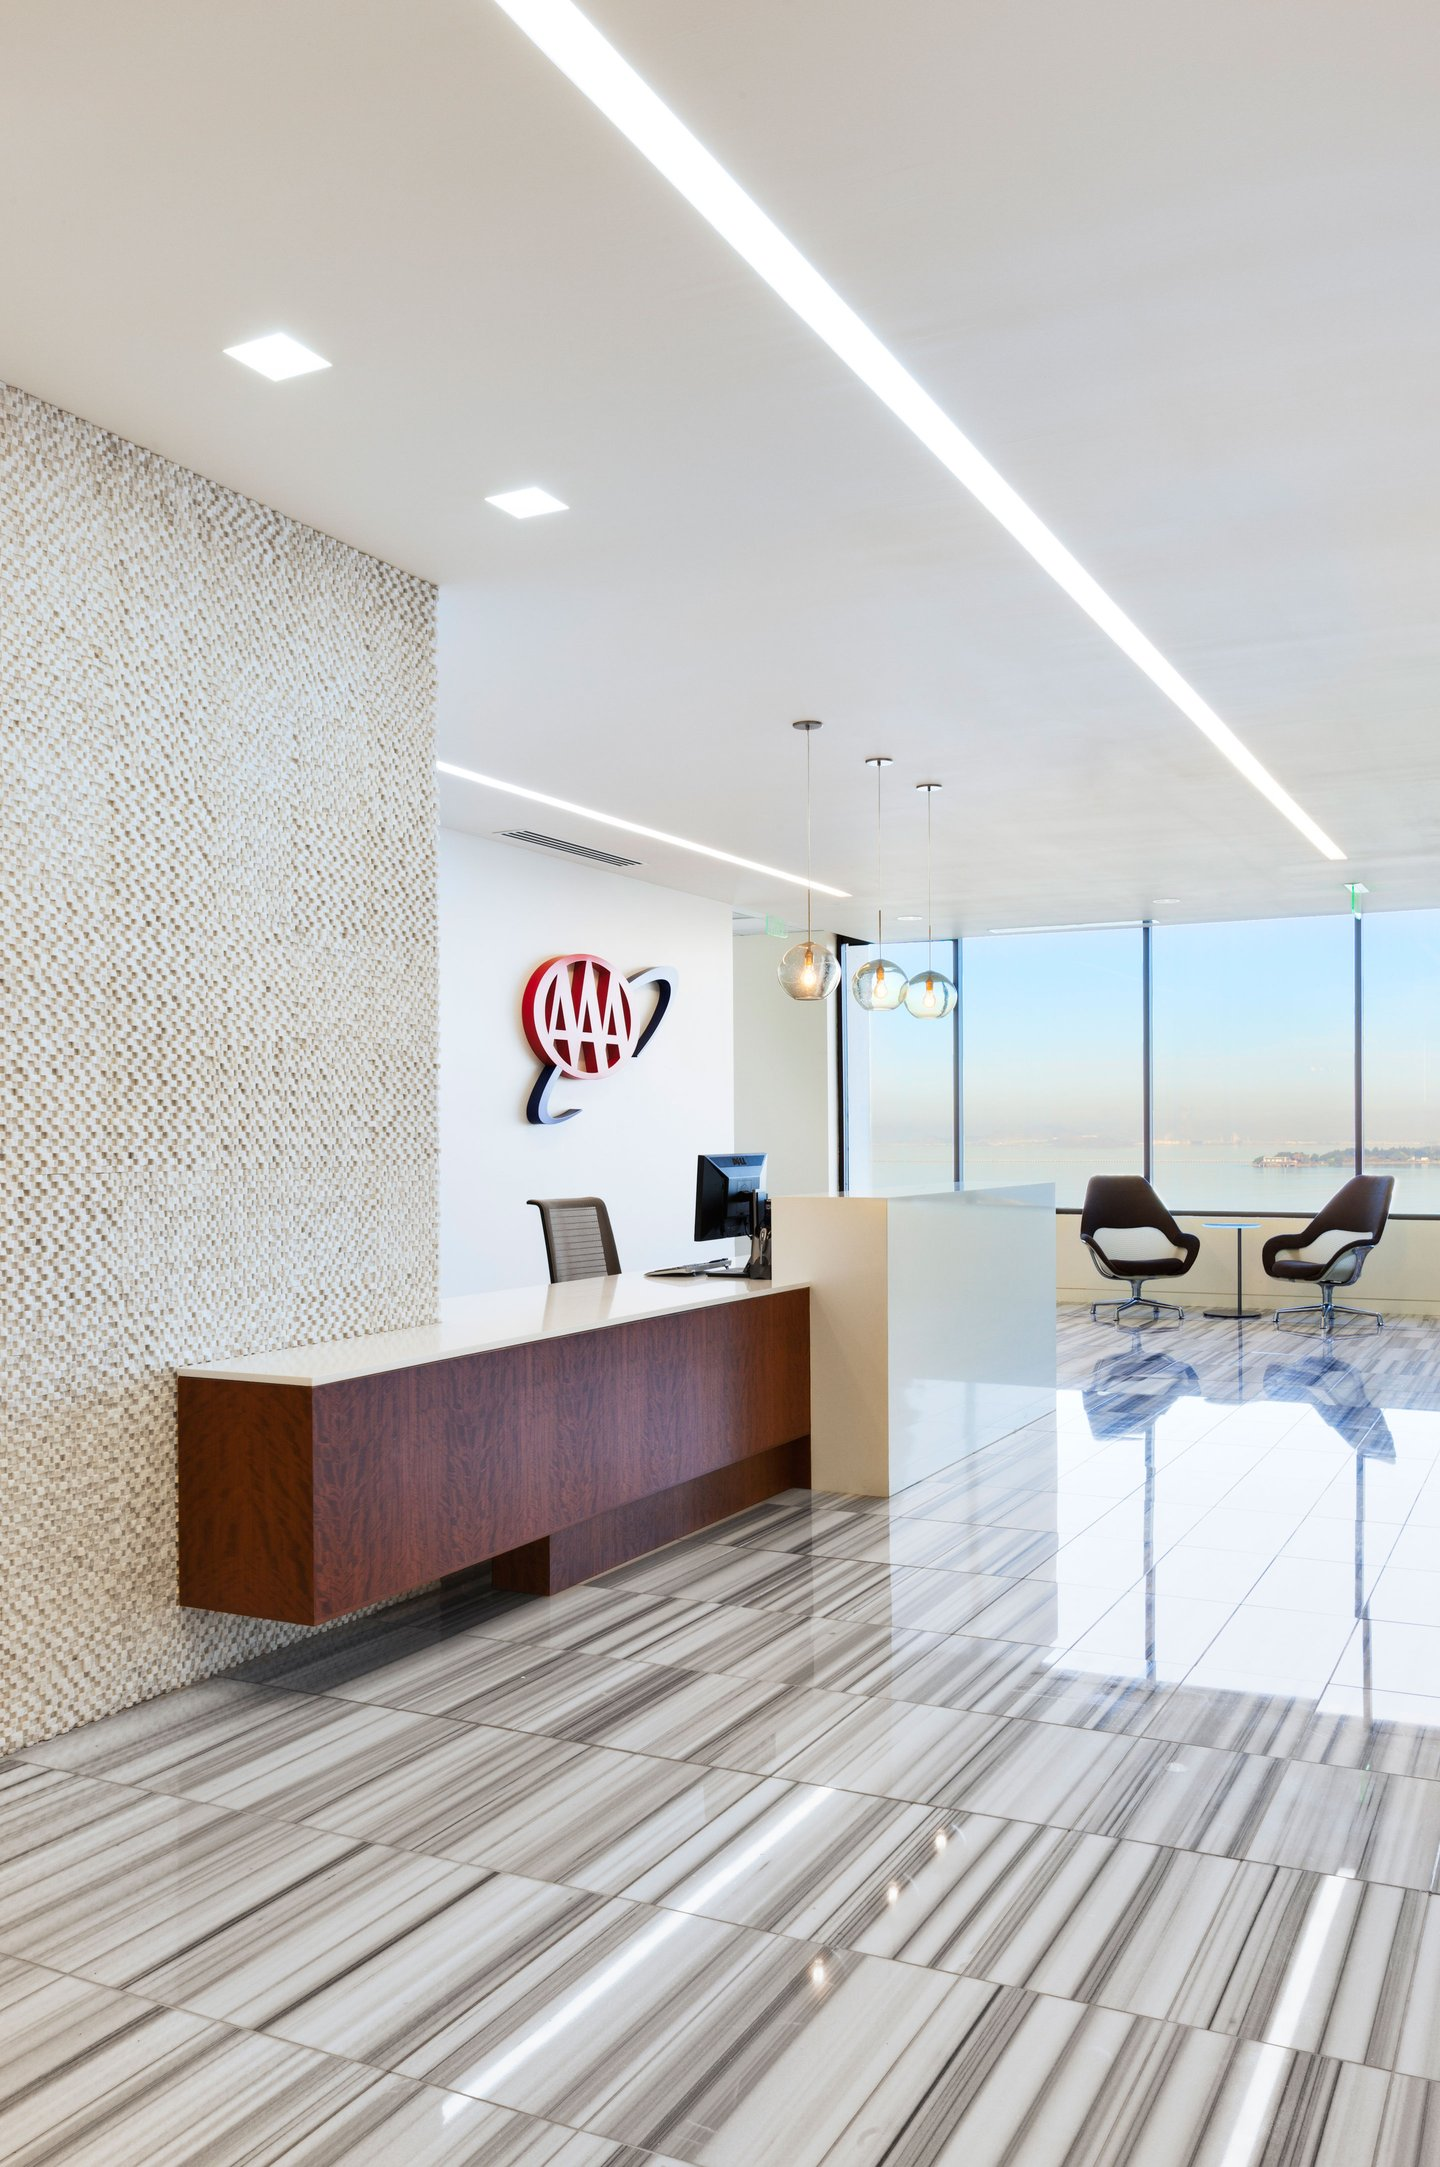 Aaa Club Corporate Office. Aaa Club Corporate Office Aaa U